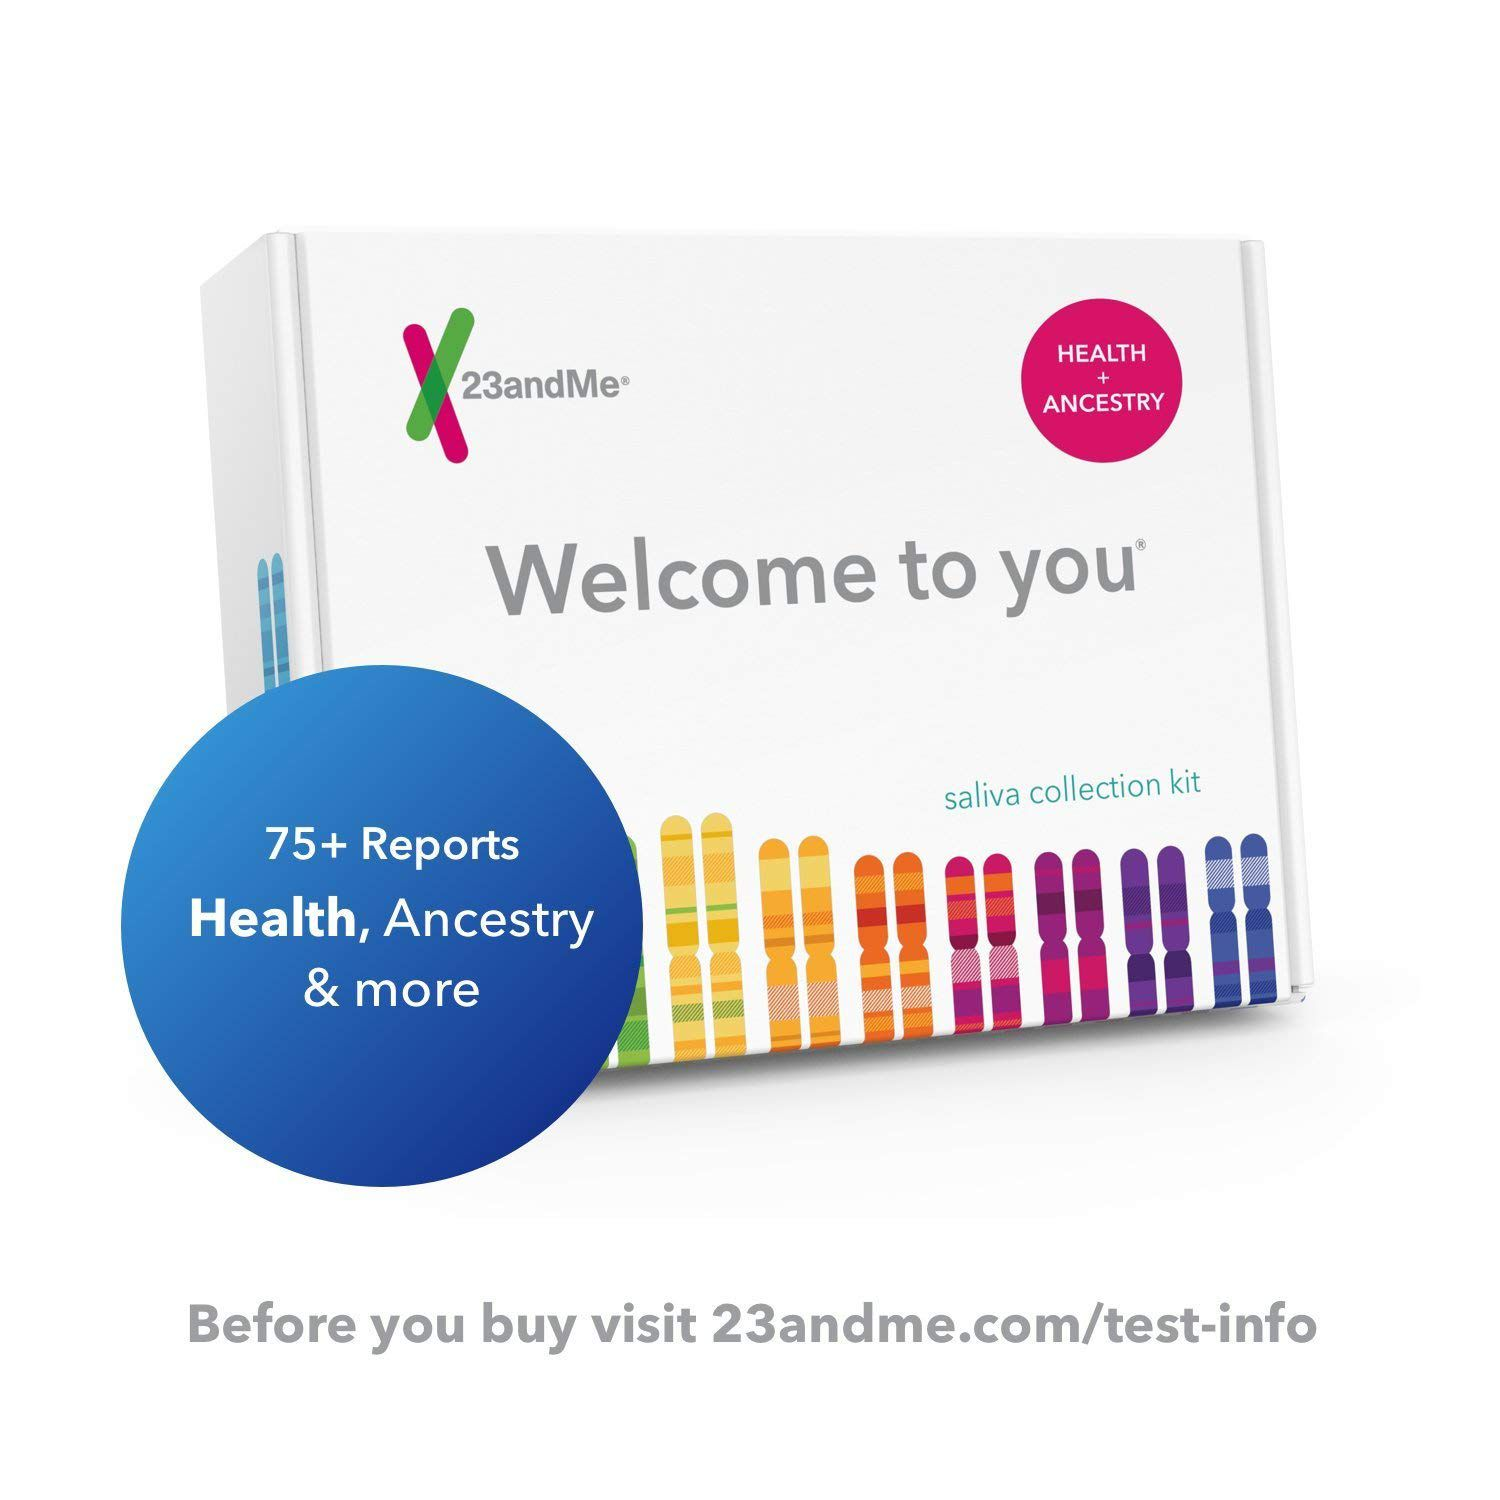 Best Dna Test 2019 The 7 Best DNA Testing Kits of 2019